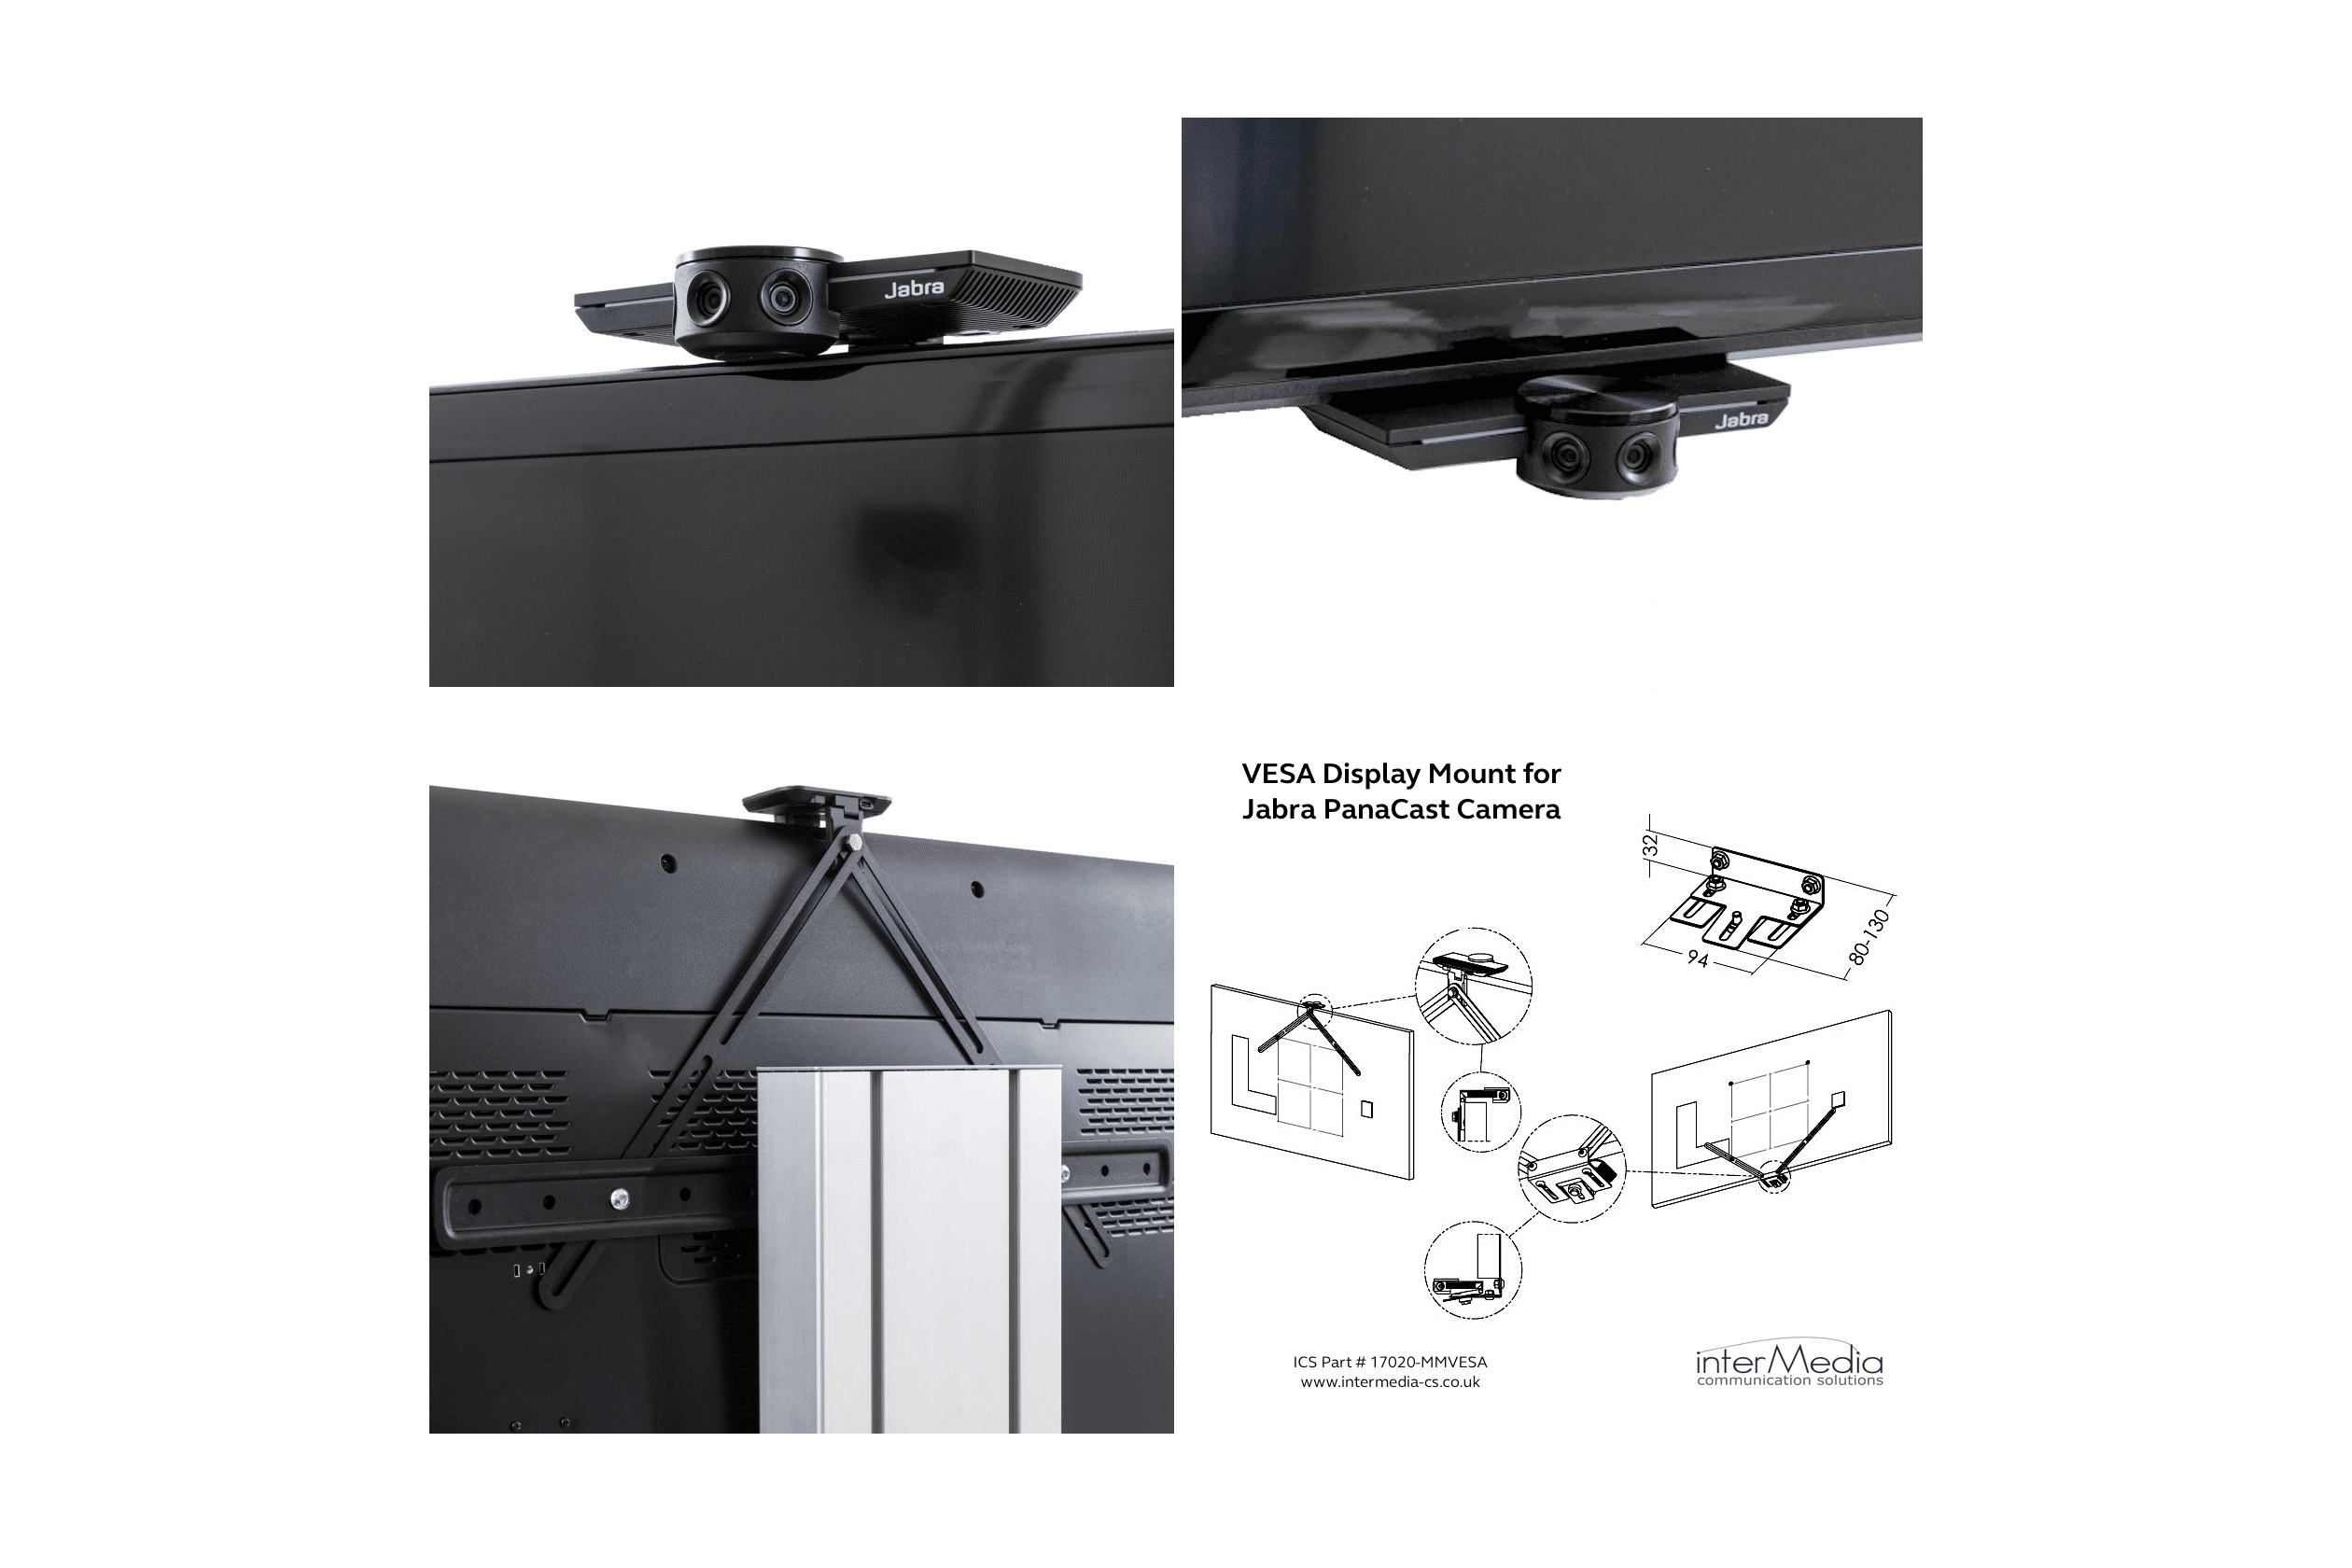 New Monitor Mount Solution for the Jabra PanaCast